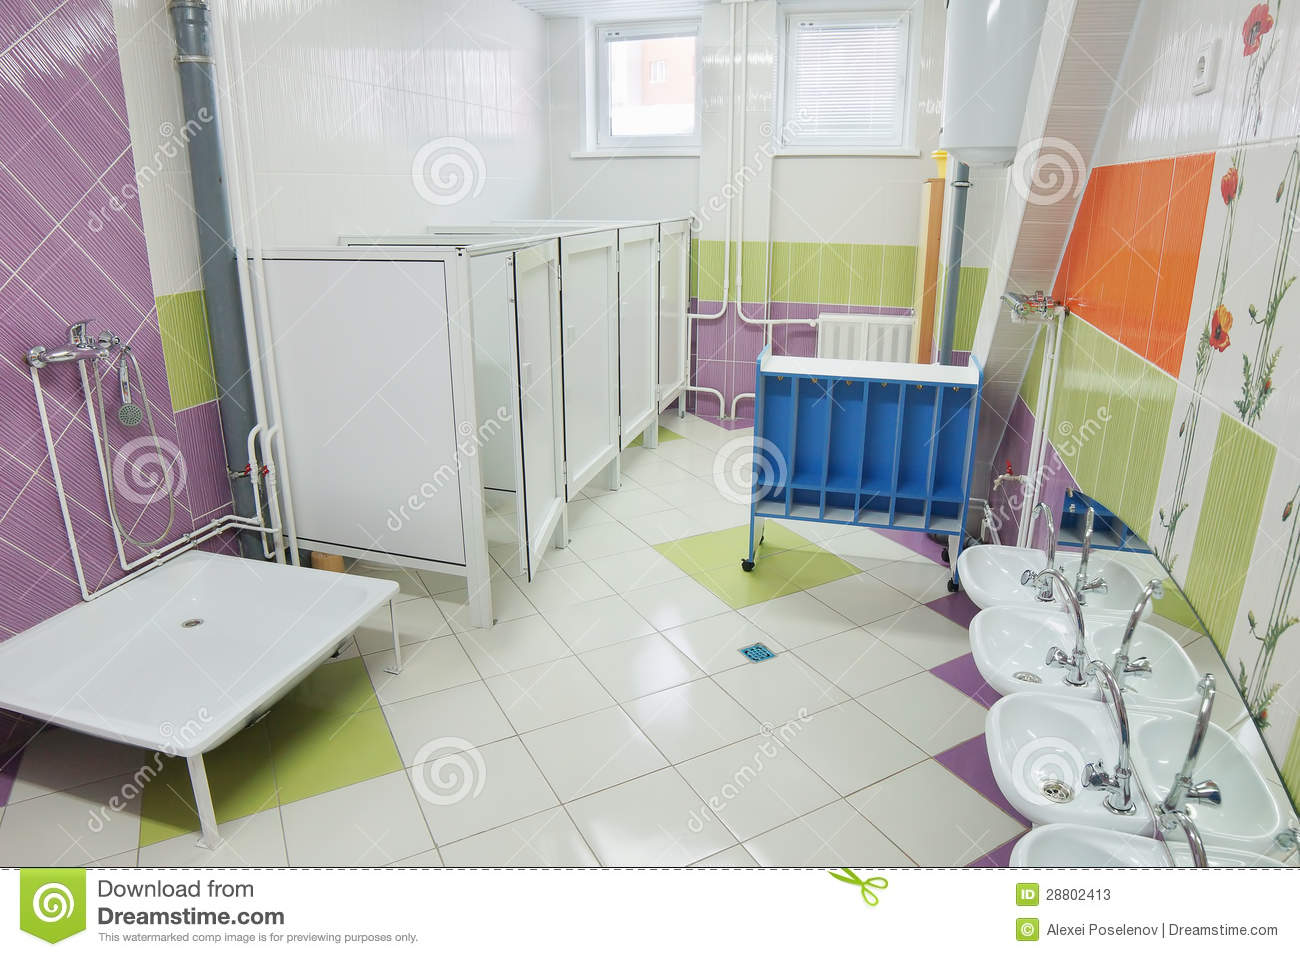 bathroom in a preschool stock image image of bathroom